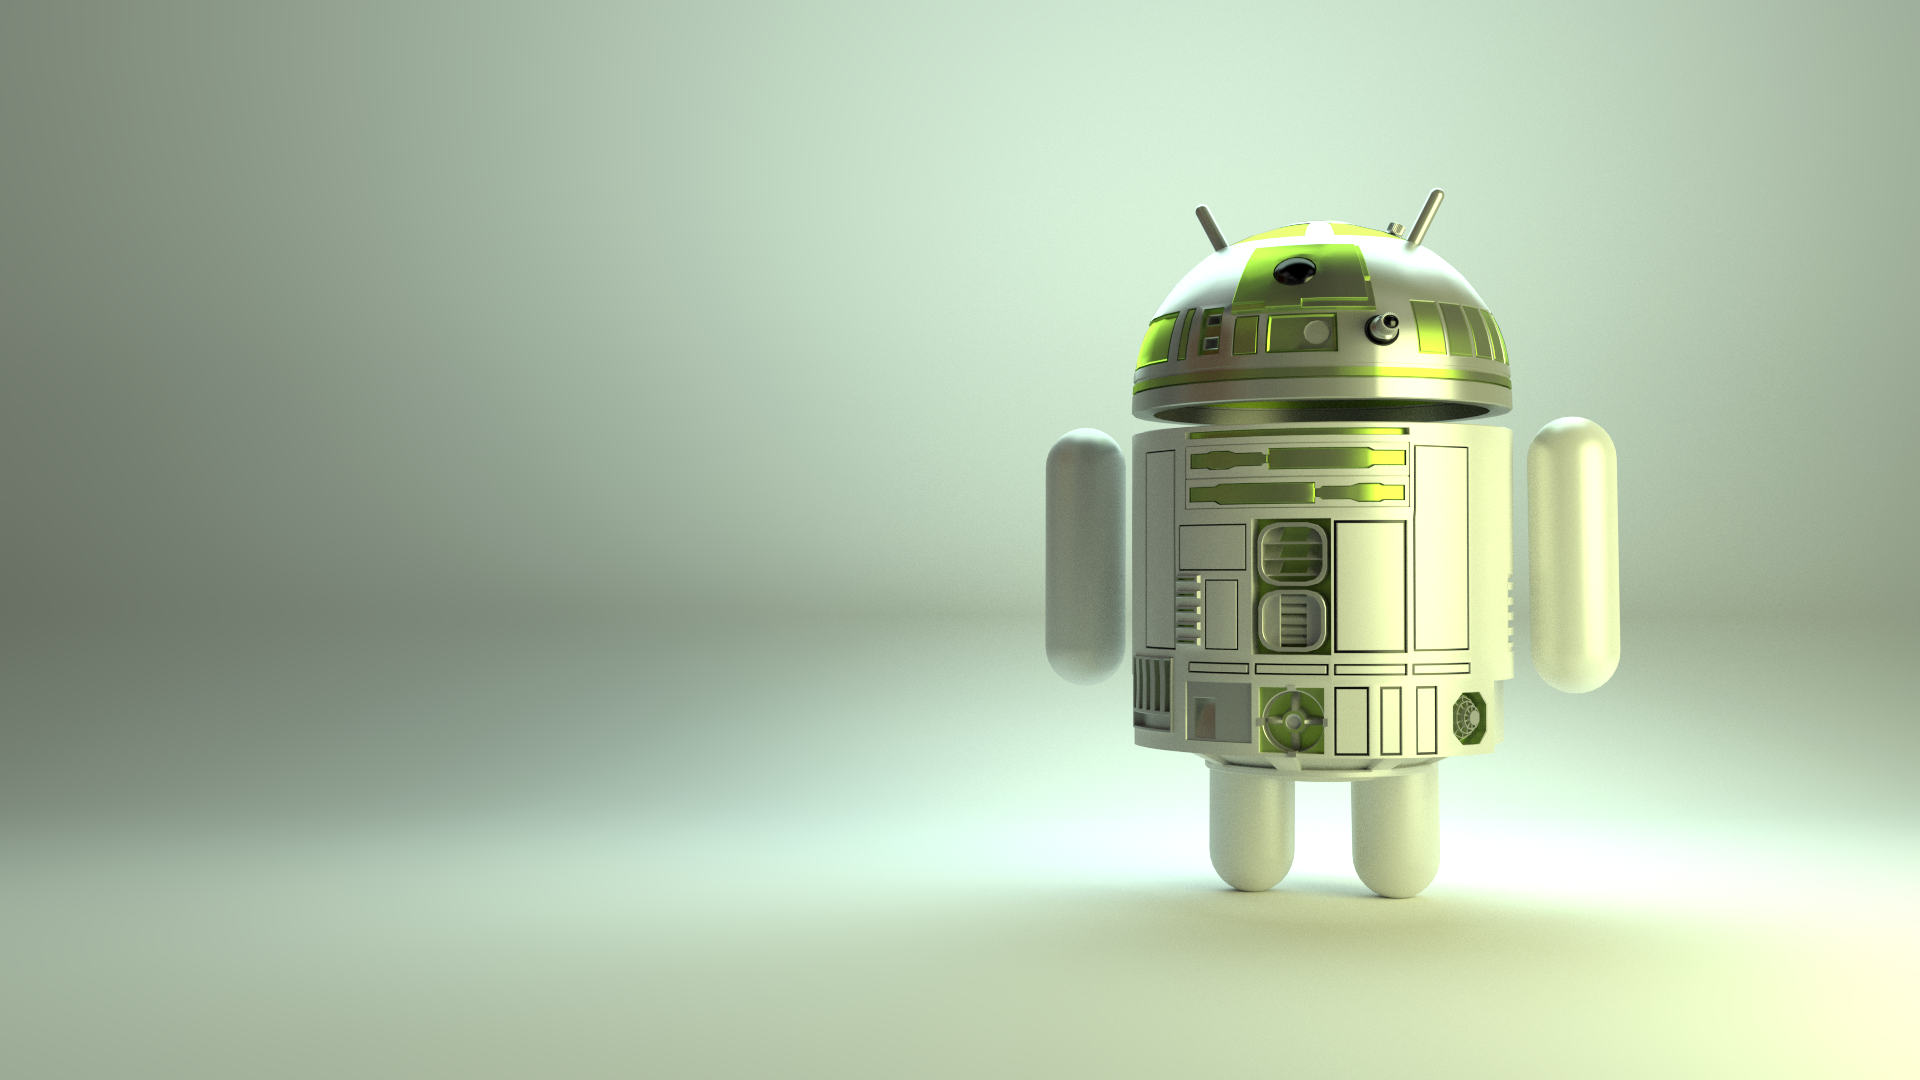 Android Robot R2 D2 Style By Ilikepixels On Deviantart